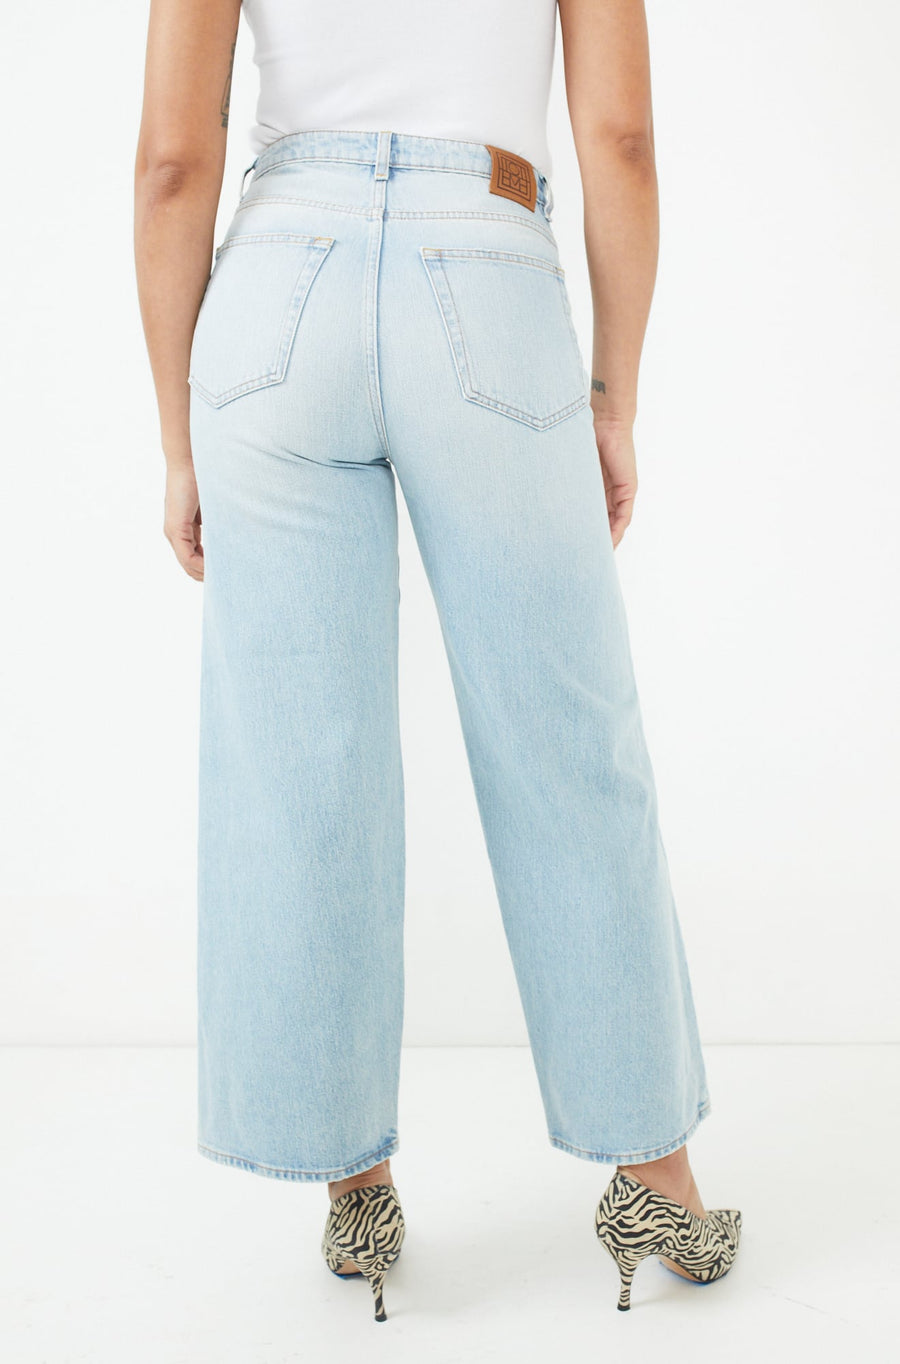 Flair Jeans-light blue wash